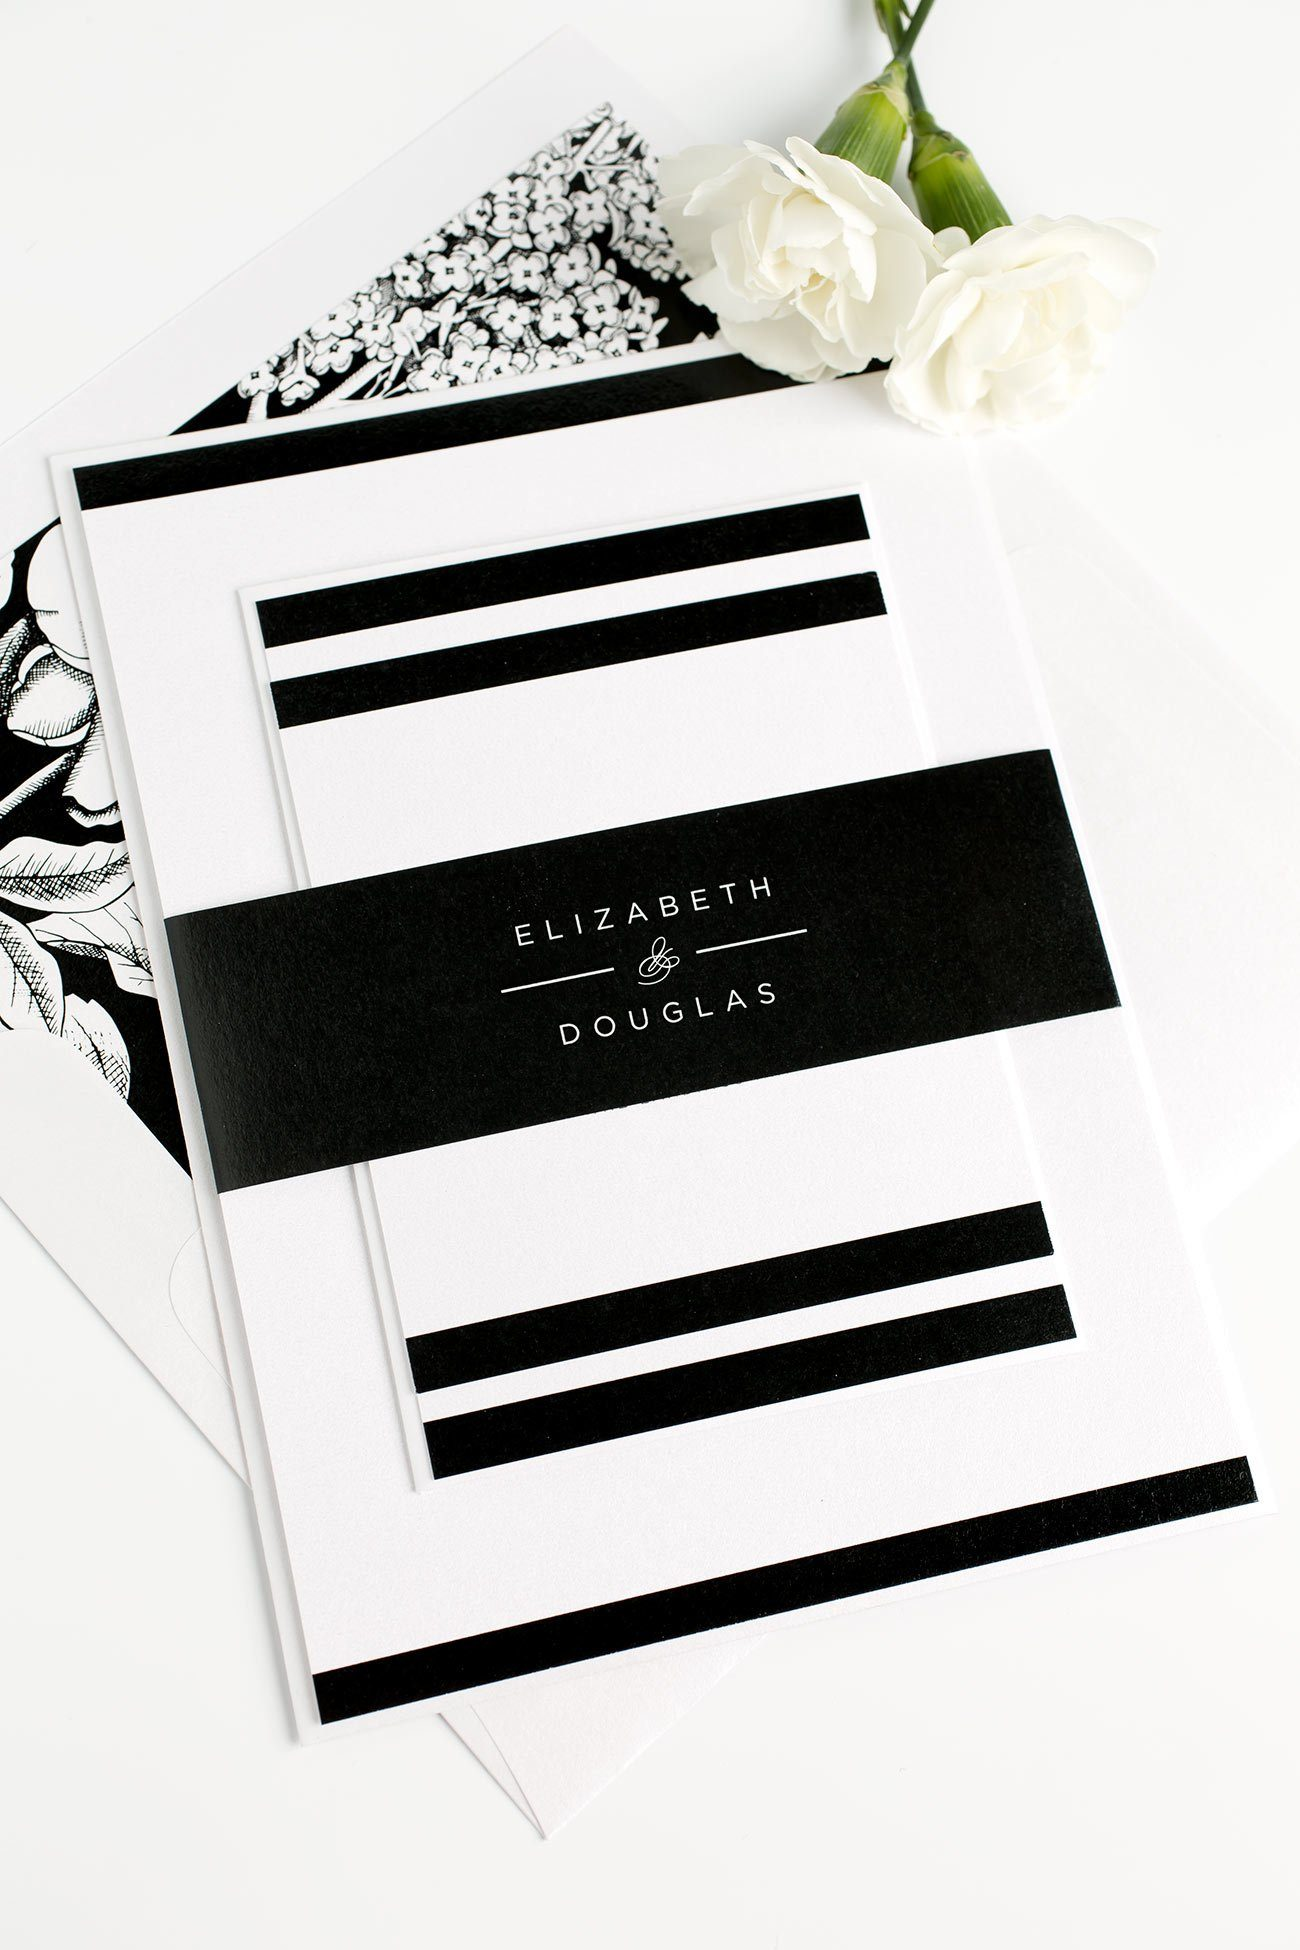 Black and White Modern Wedding Invitations with a Floral Envelope Liner